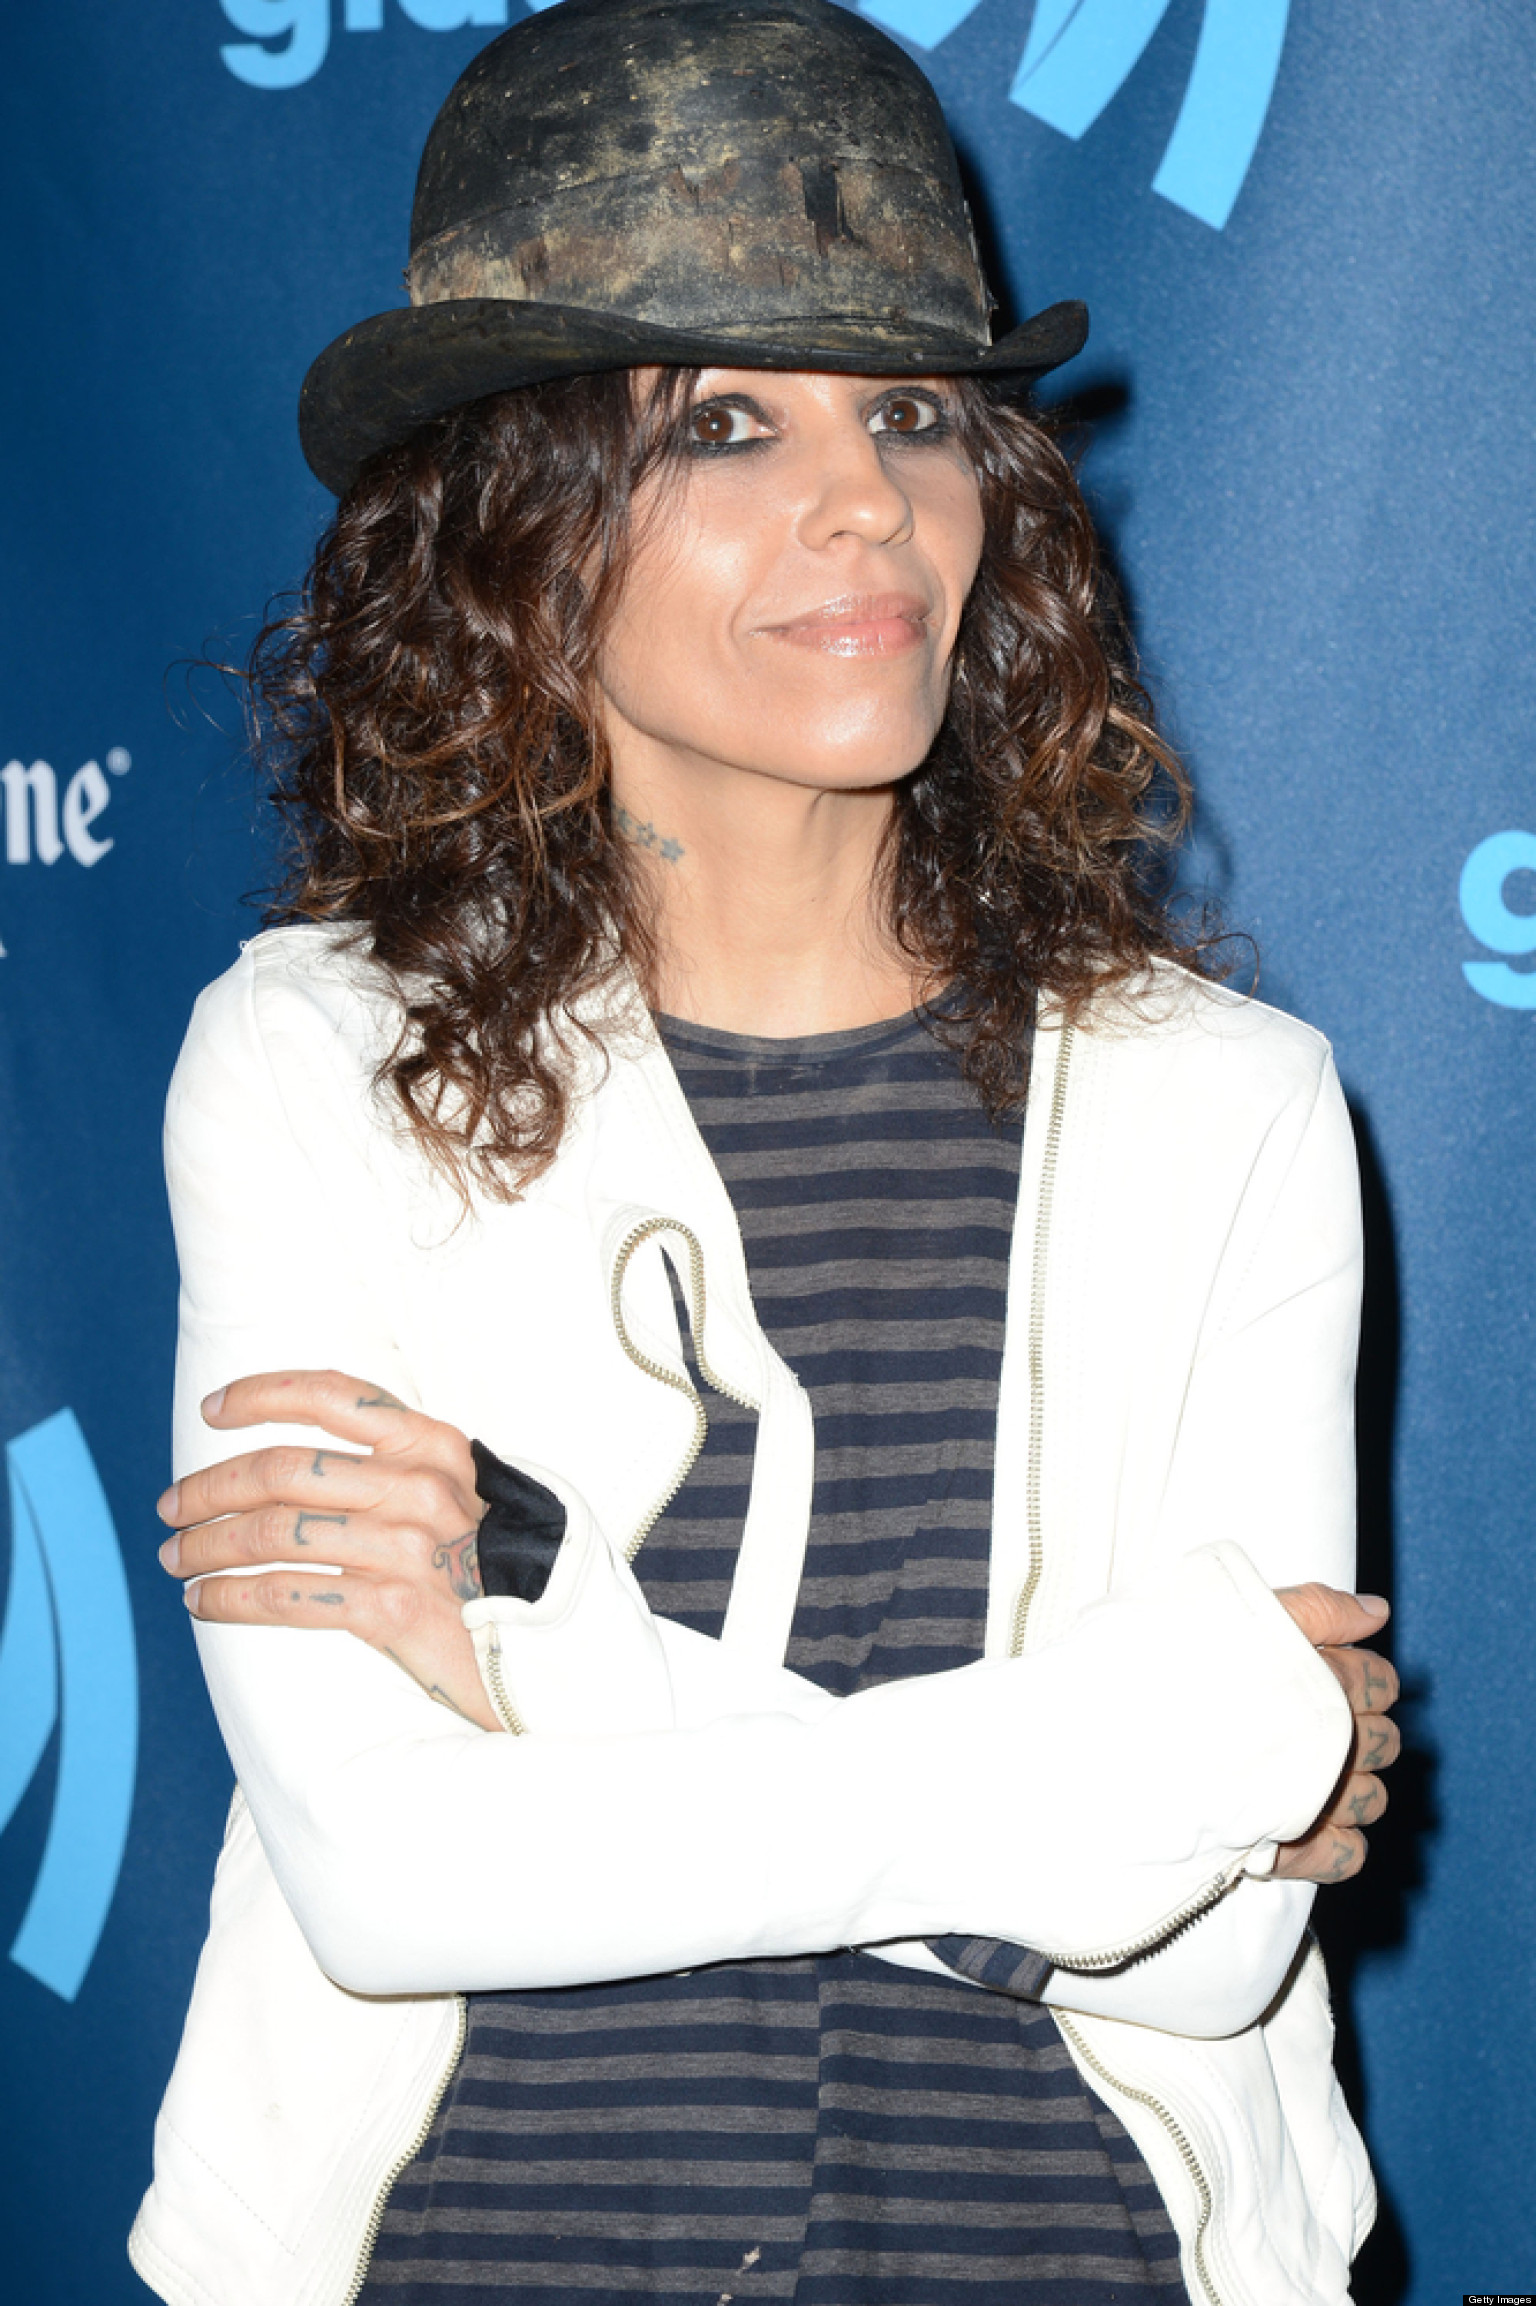 Linda Perry, Legendary Songwriter, Discusses Being Out On ...